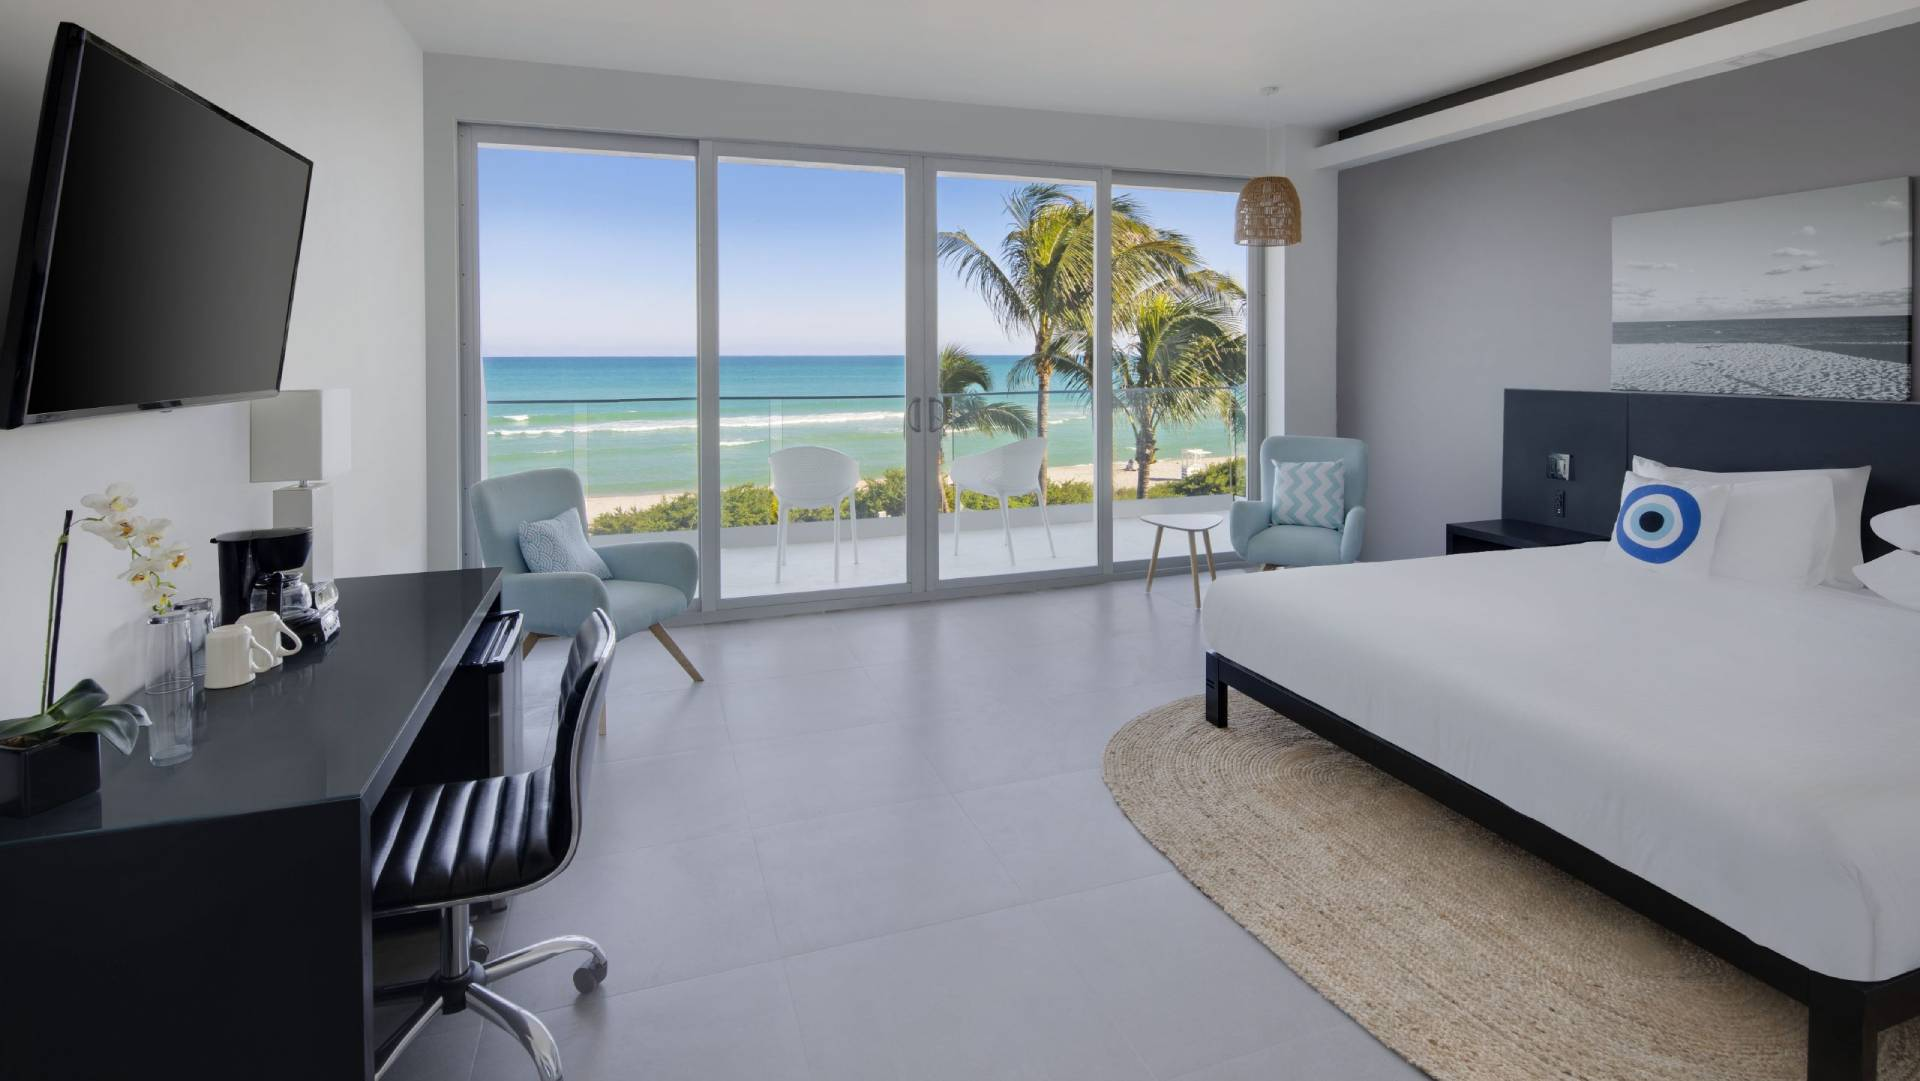 Oceanfront-King-bed-balcony-1-1